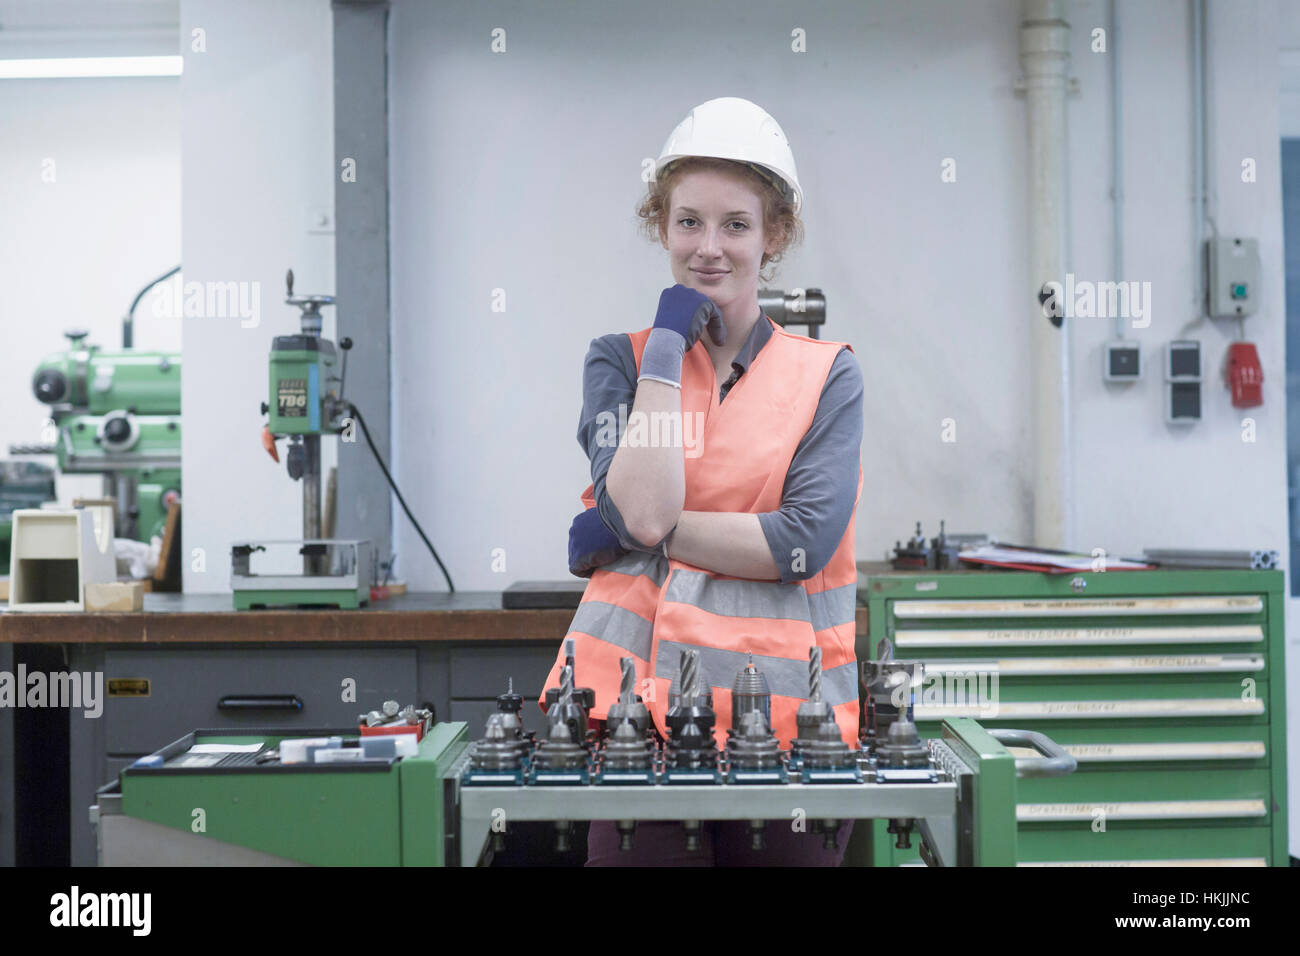 Young female engineer working in an industrial plant, Freiburg im Breisgau, Baden-Württemberg, Germany - Stock Image